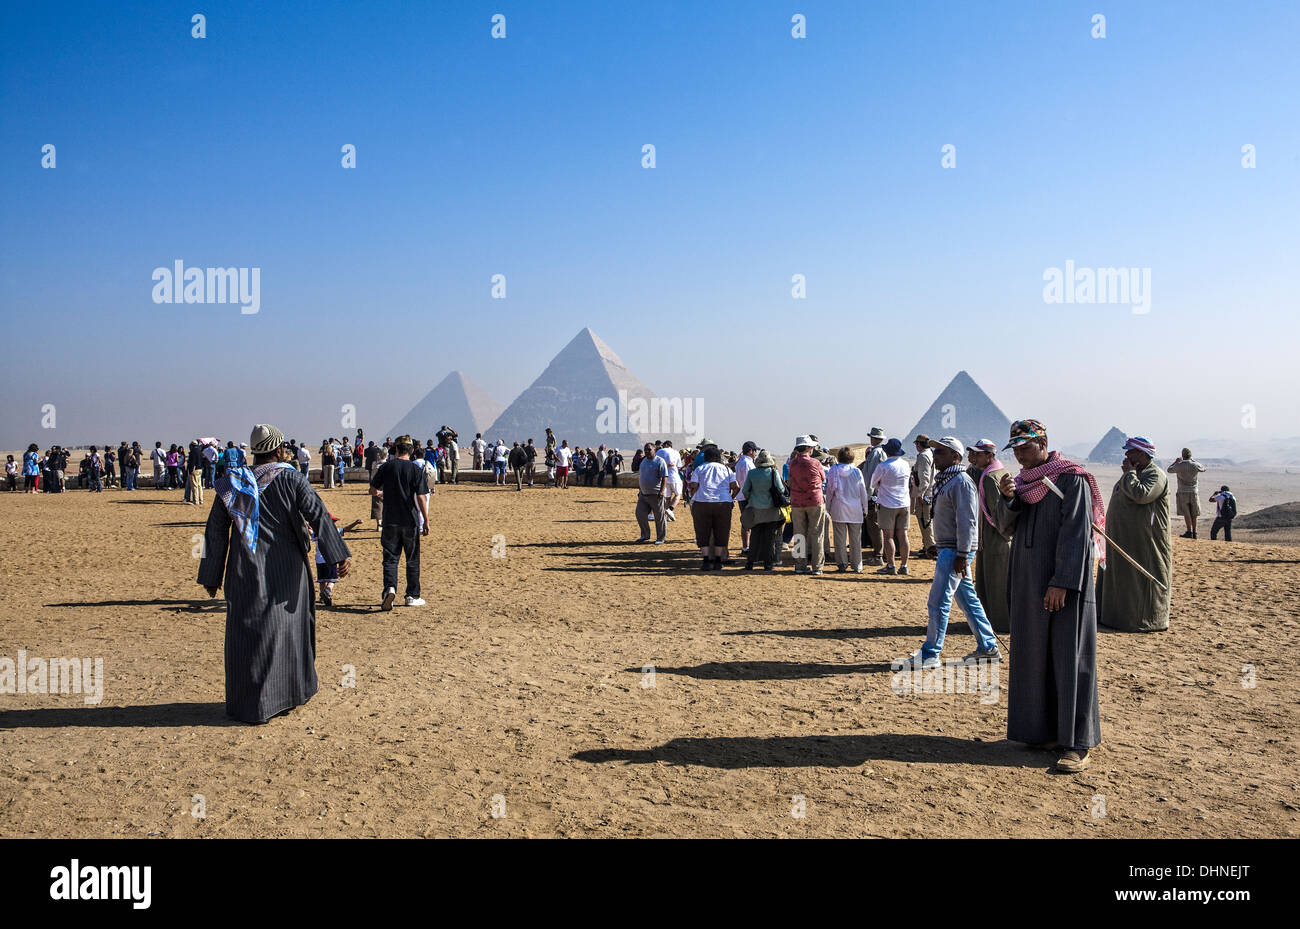 Africa, Egypt, tourists in the archaeological site of Giza - Stock Image